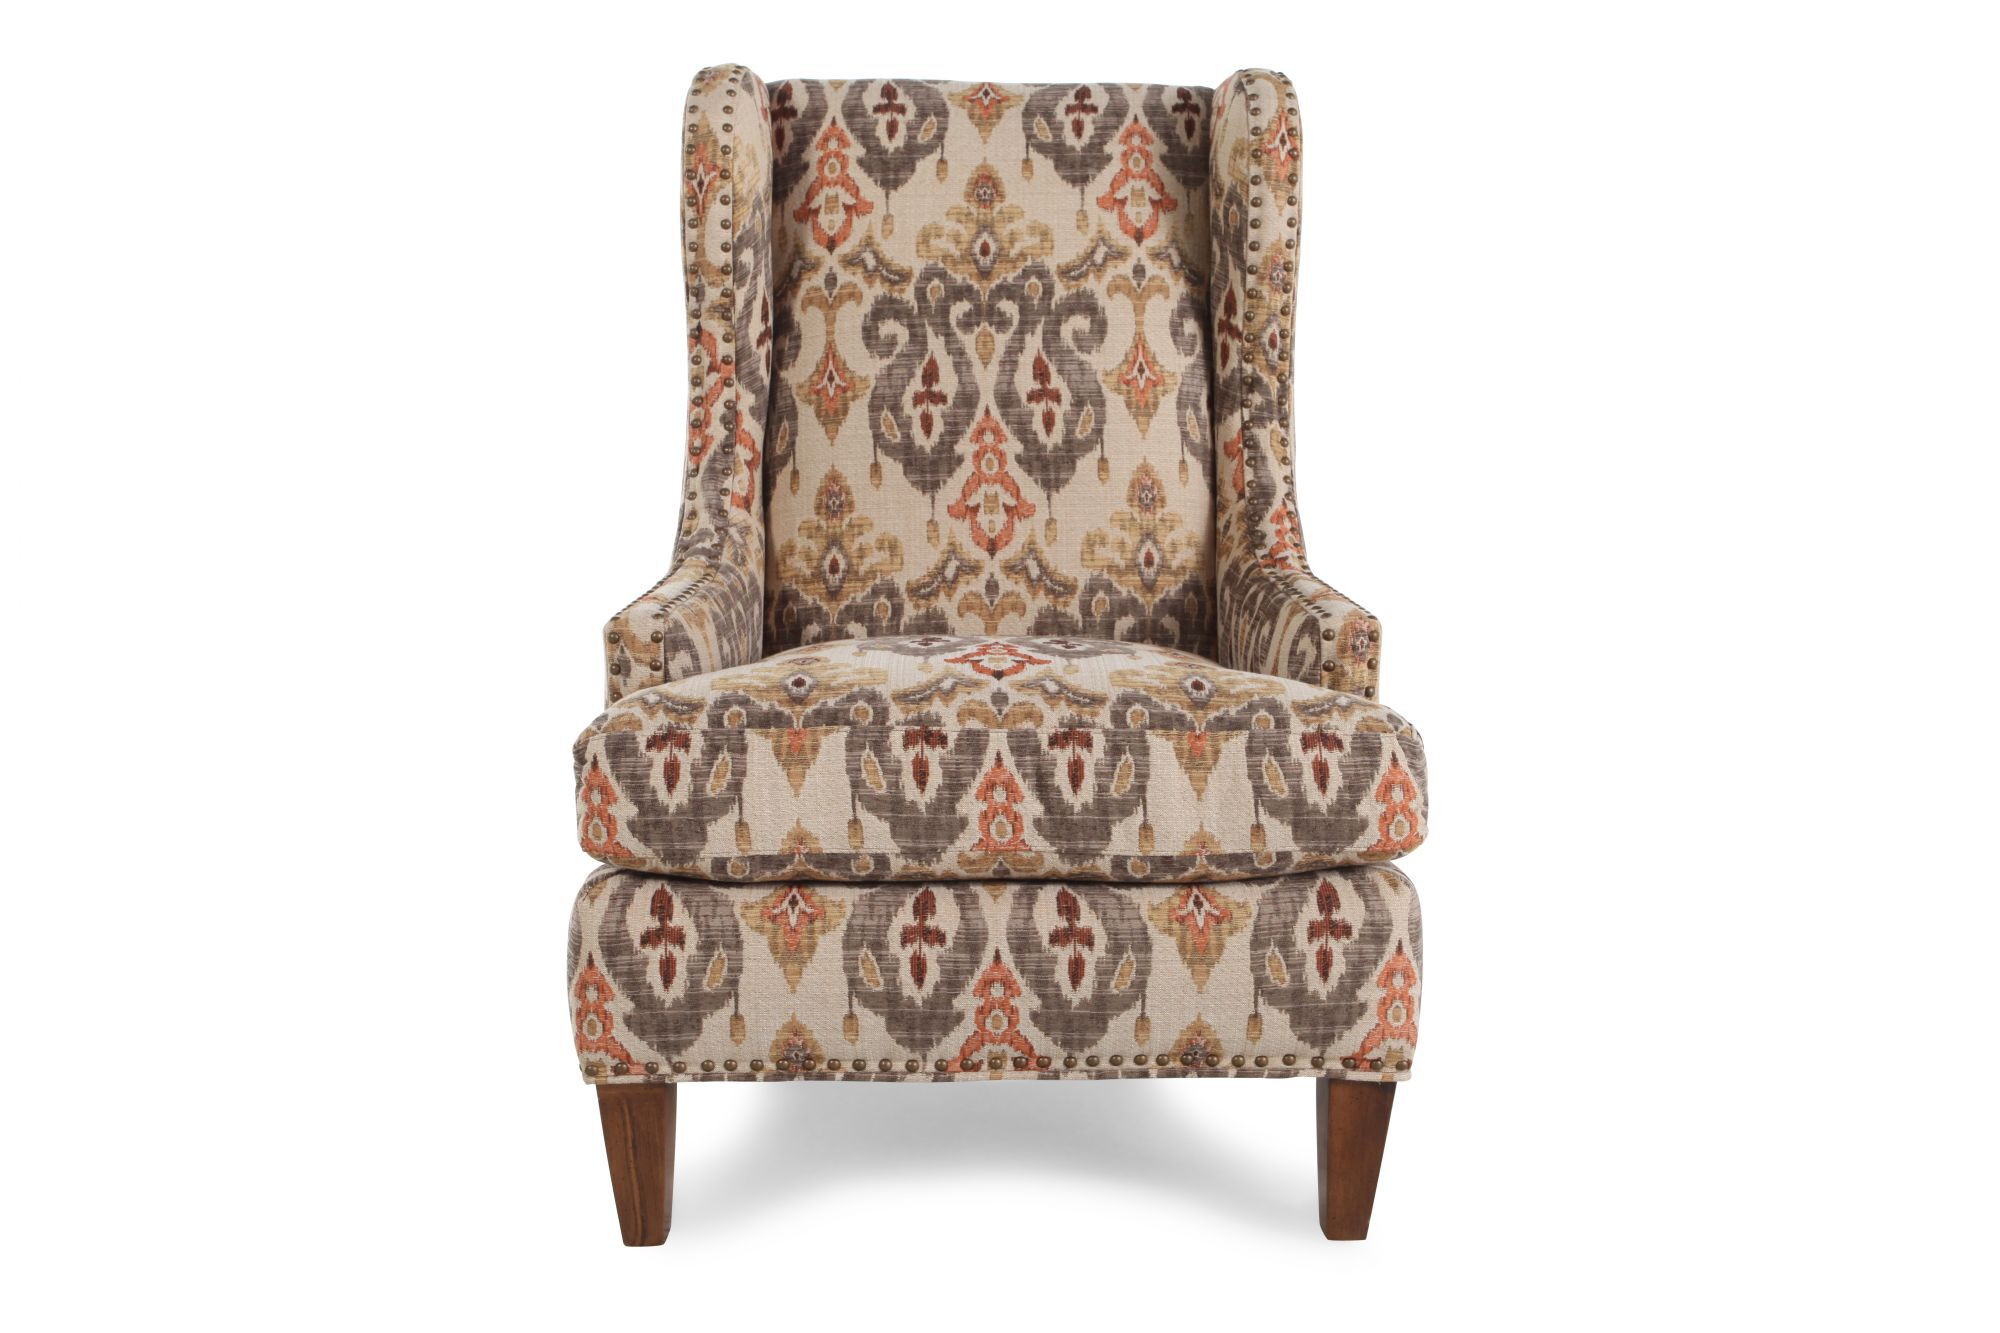 Bon Images Tapestry Patterned Wing Chair Tapestry Patterned Wing Chair